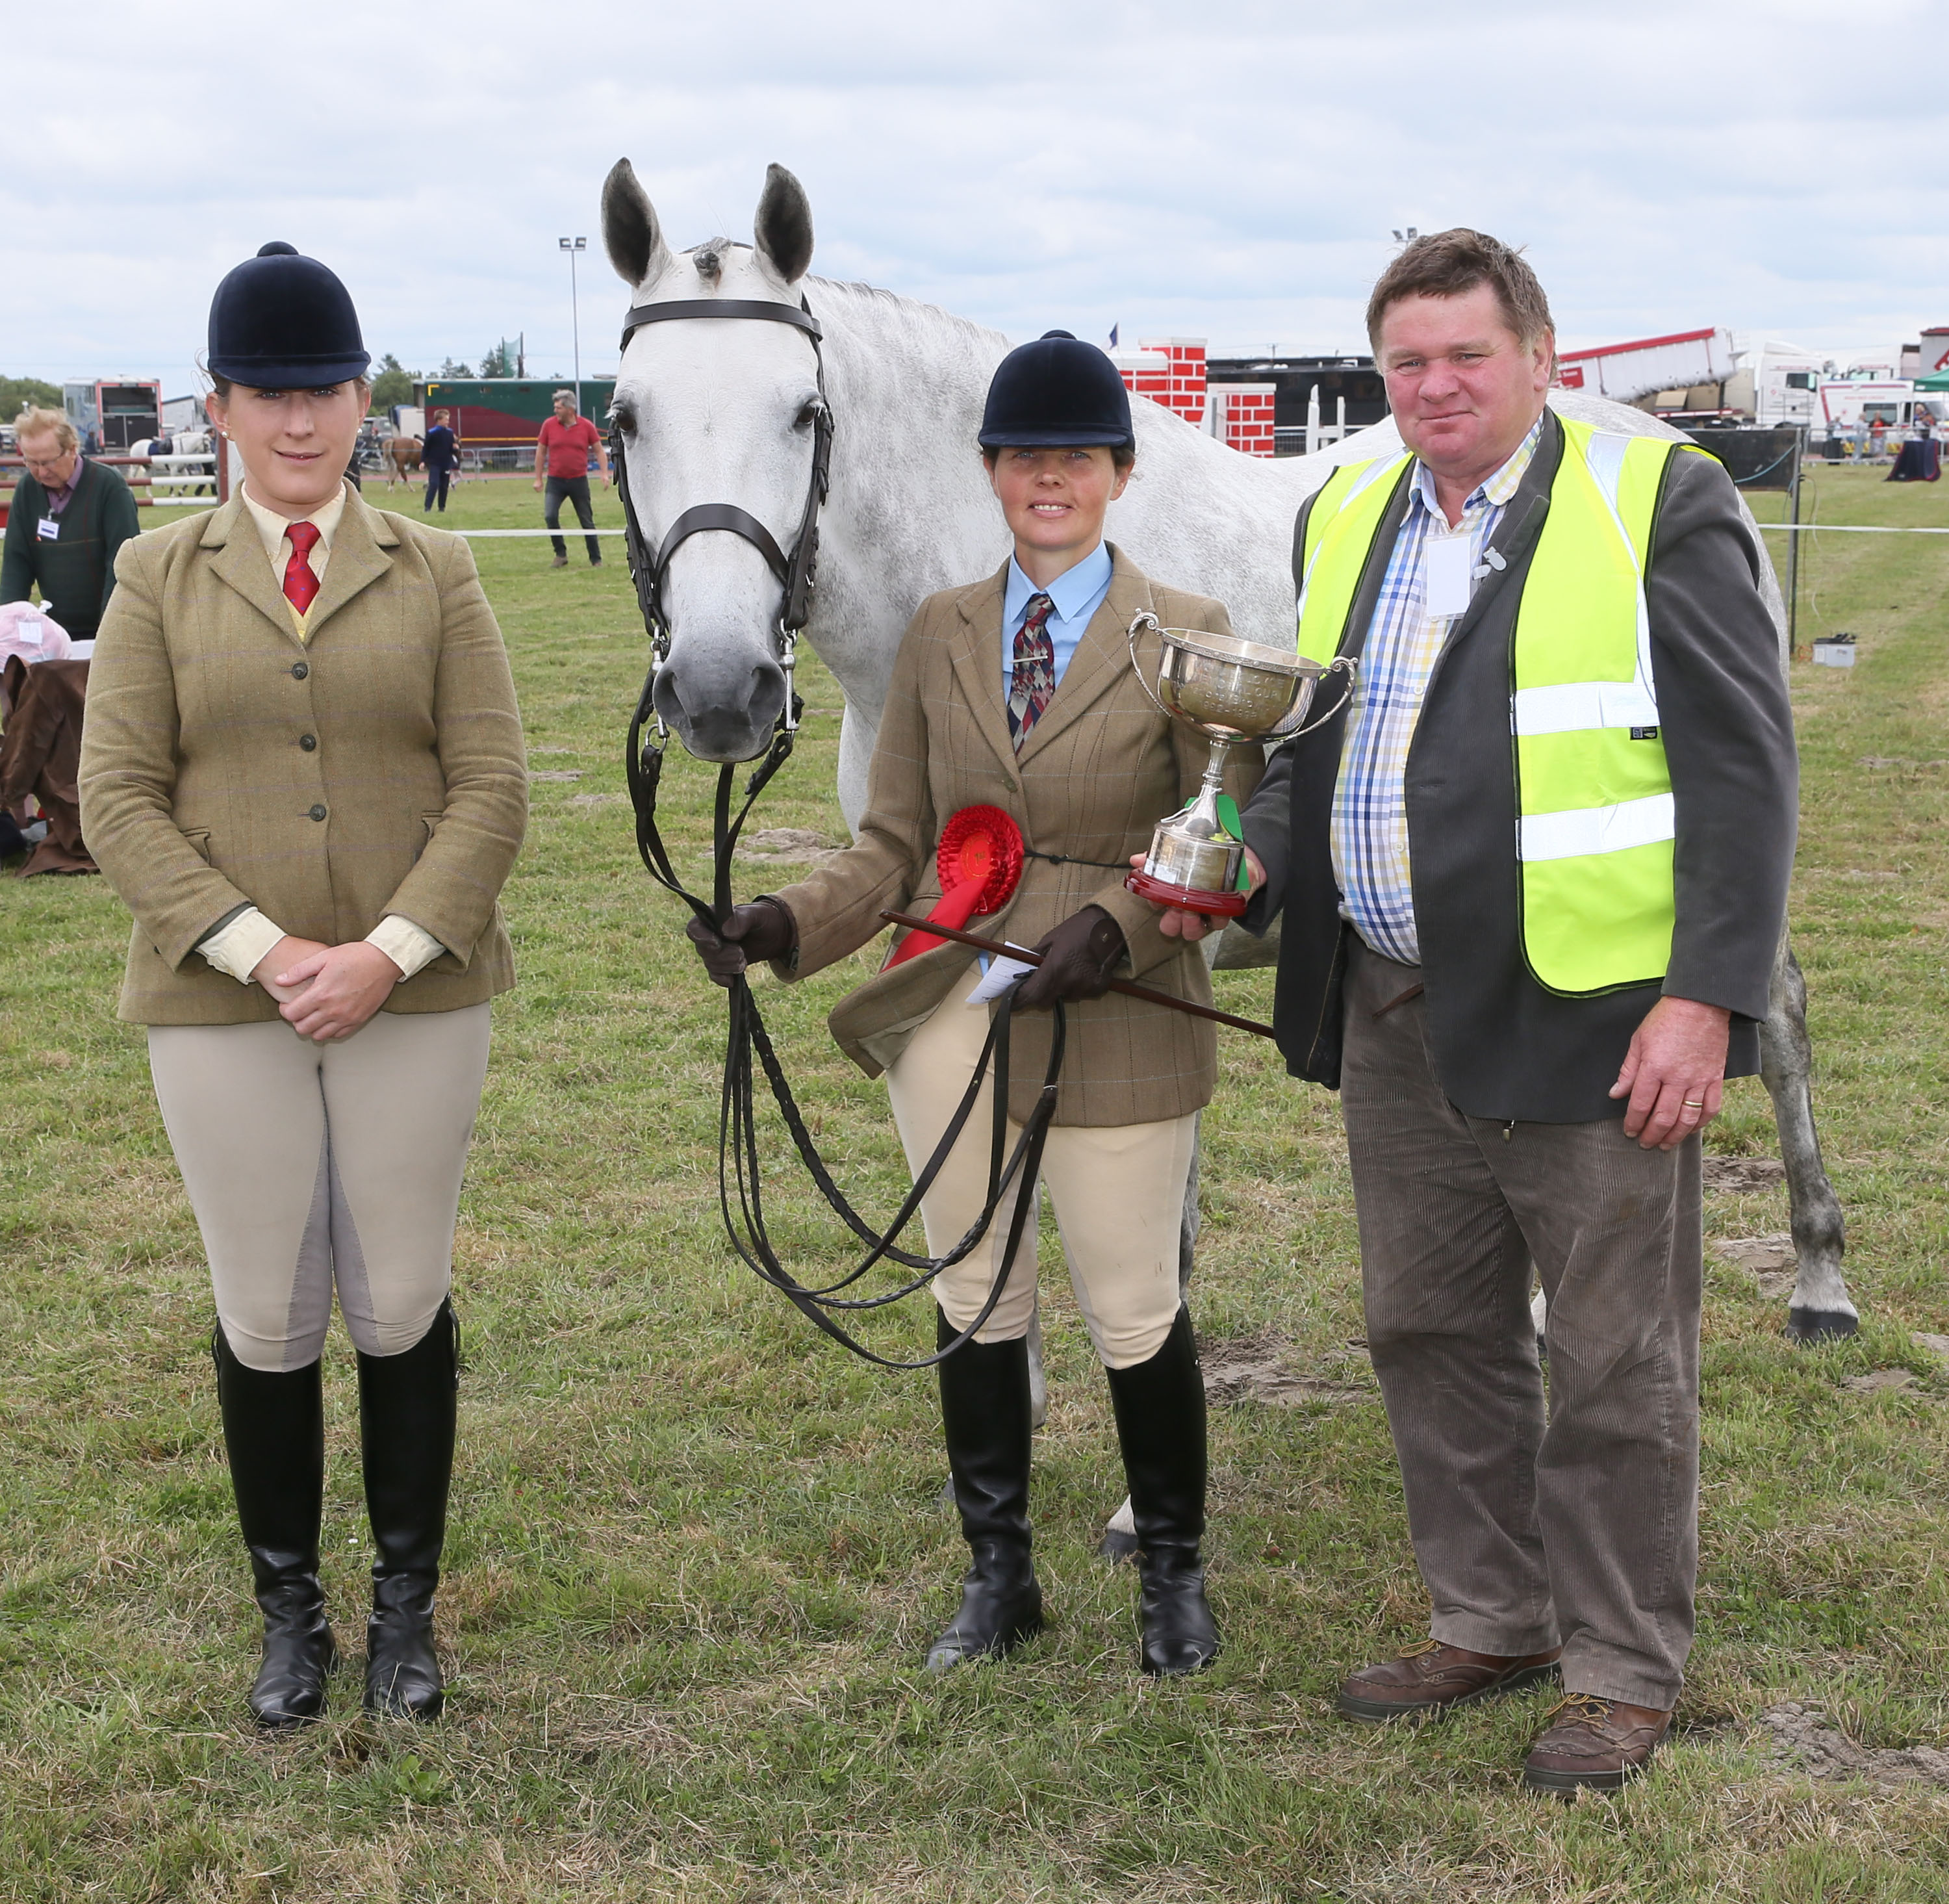 Pat Prendergast presenting the James Prendergast Memorial Cup (sponsored by Pat and Pauline Prendergast) to Petra Hewer, Derrada Westport, for Best Thoroughbred Brood Mare likely to produce a sports Horse, at Claremorris 100th Agricultural Show 2018 with Sarah Conway (Judge) on left. Photo © Michael Donnelly